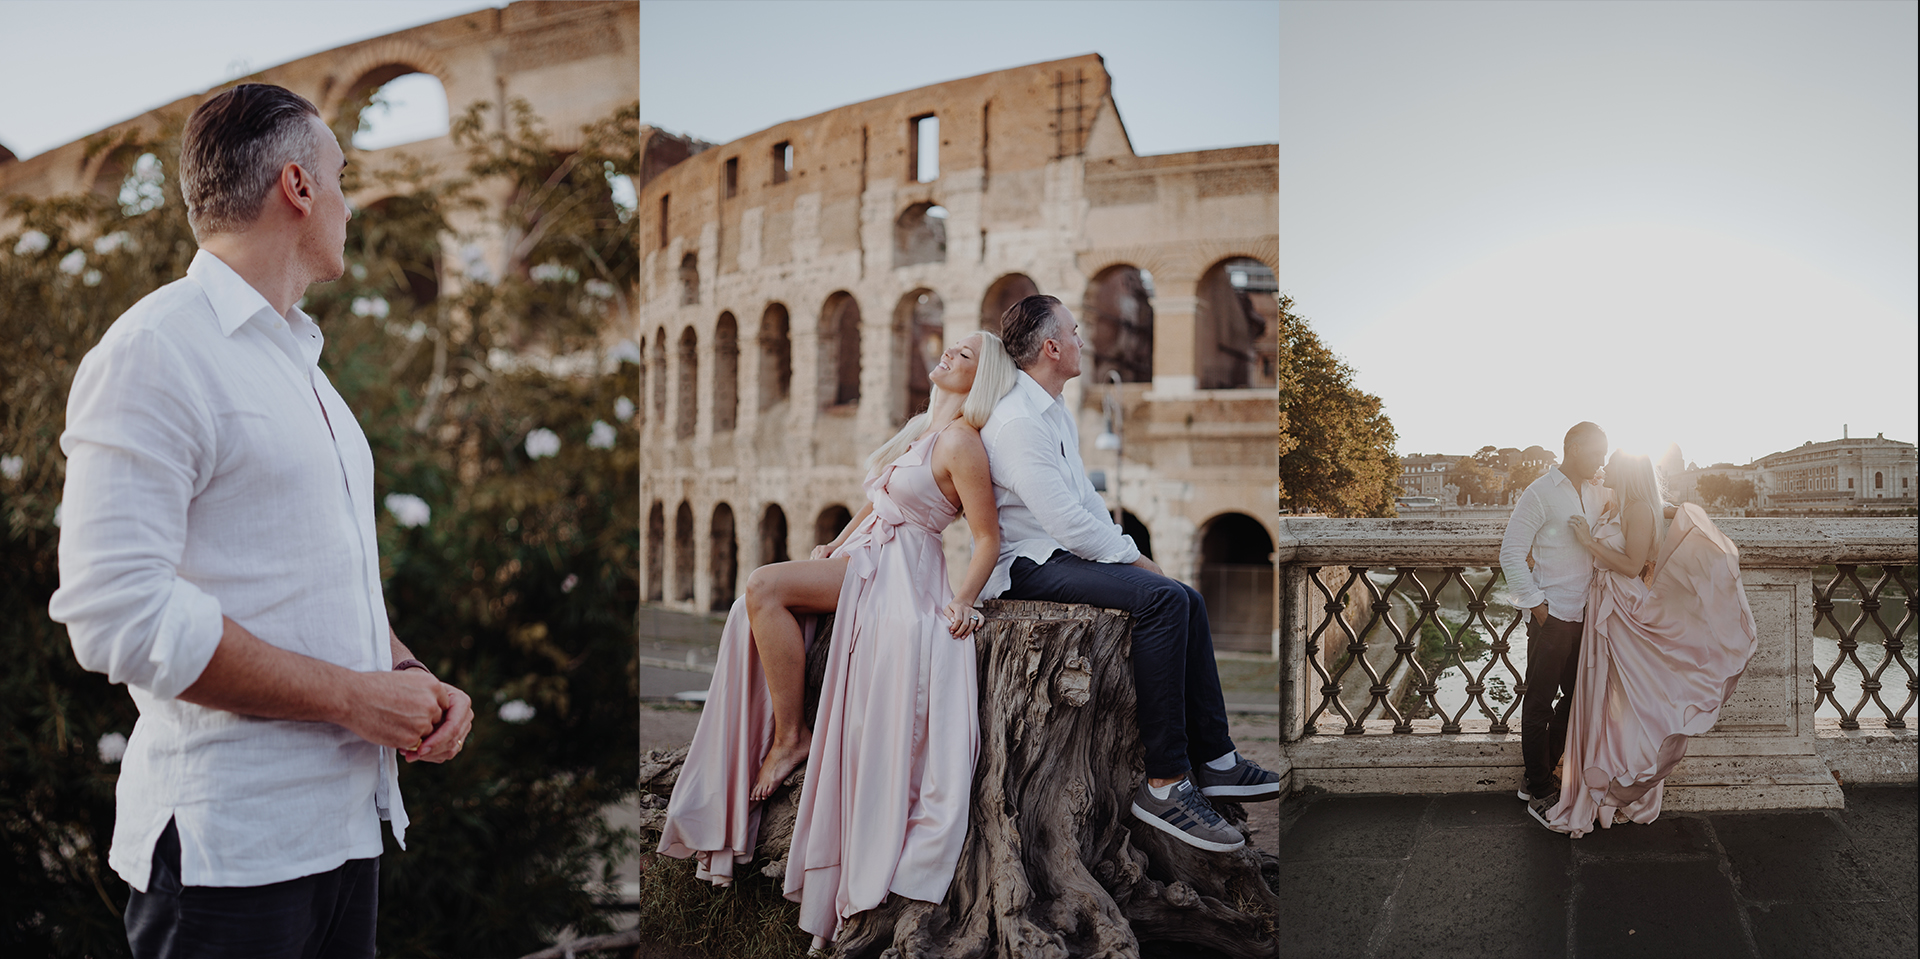 Top 5 reasons to elope in Rome